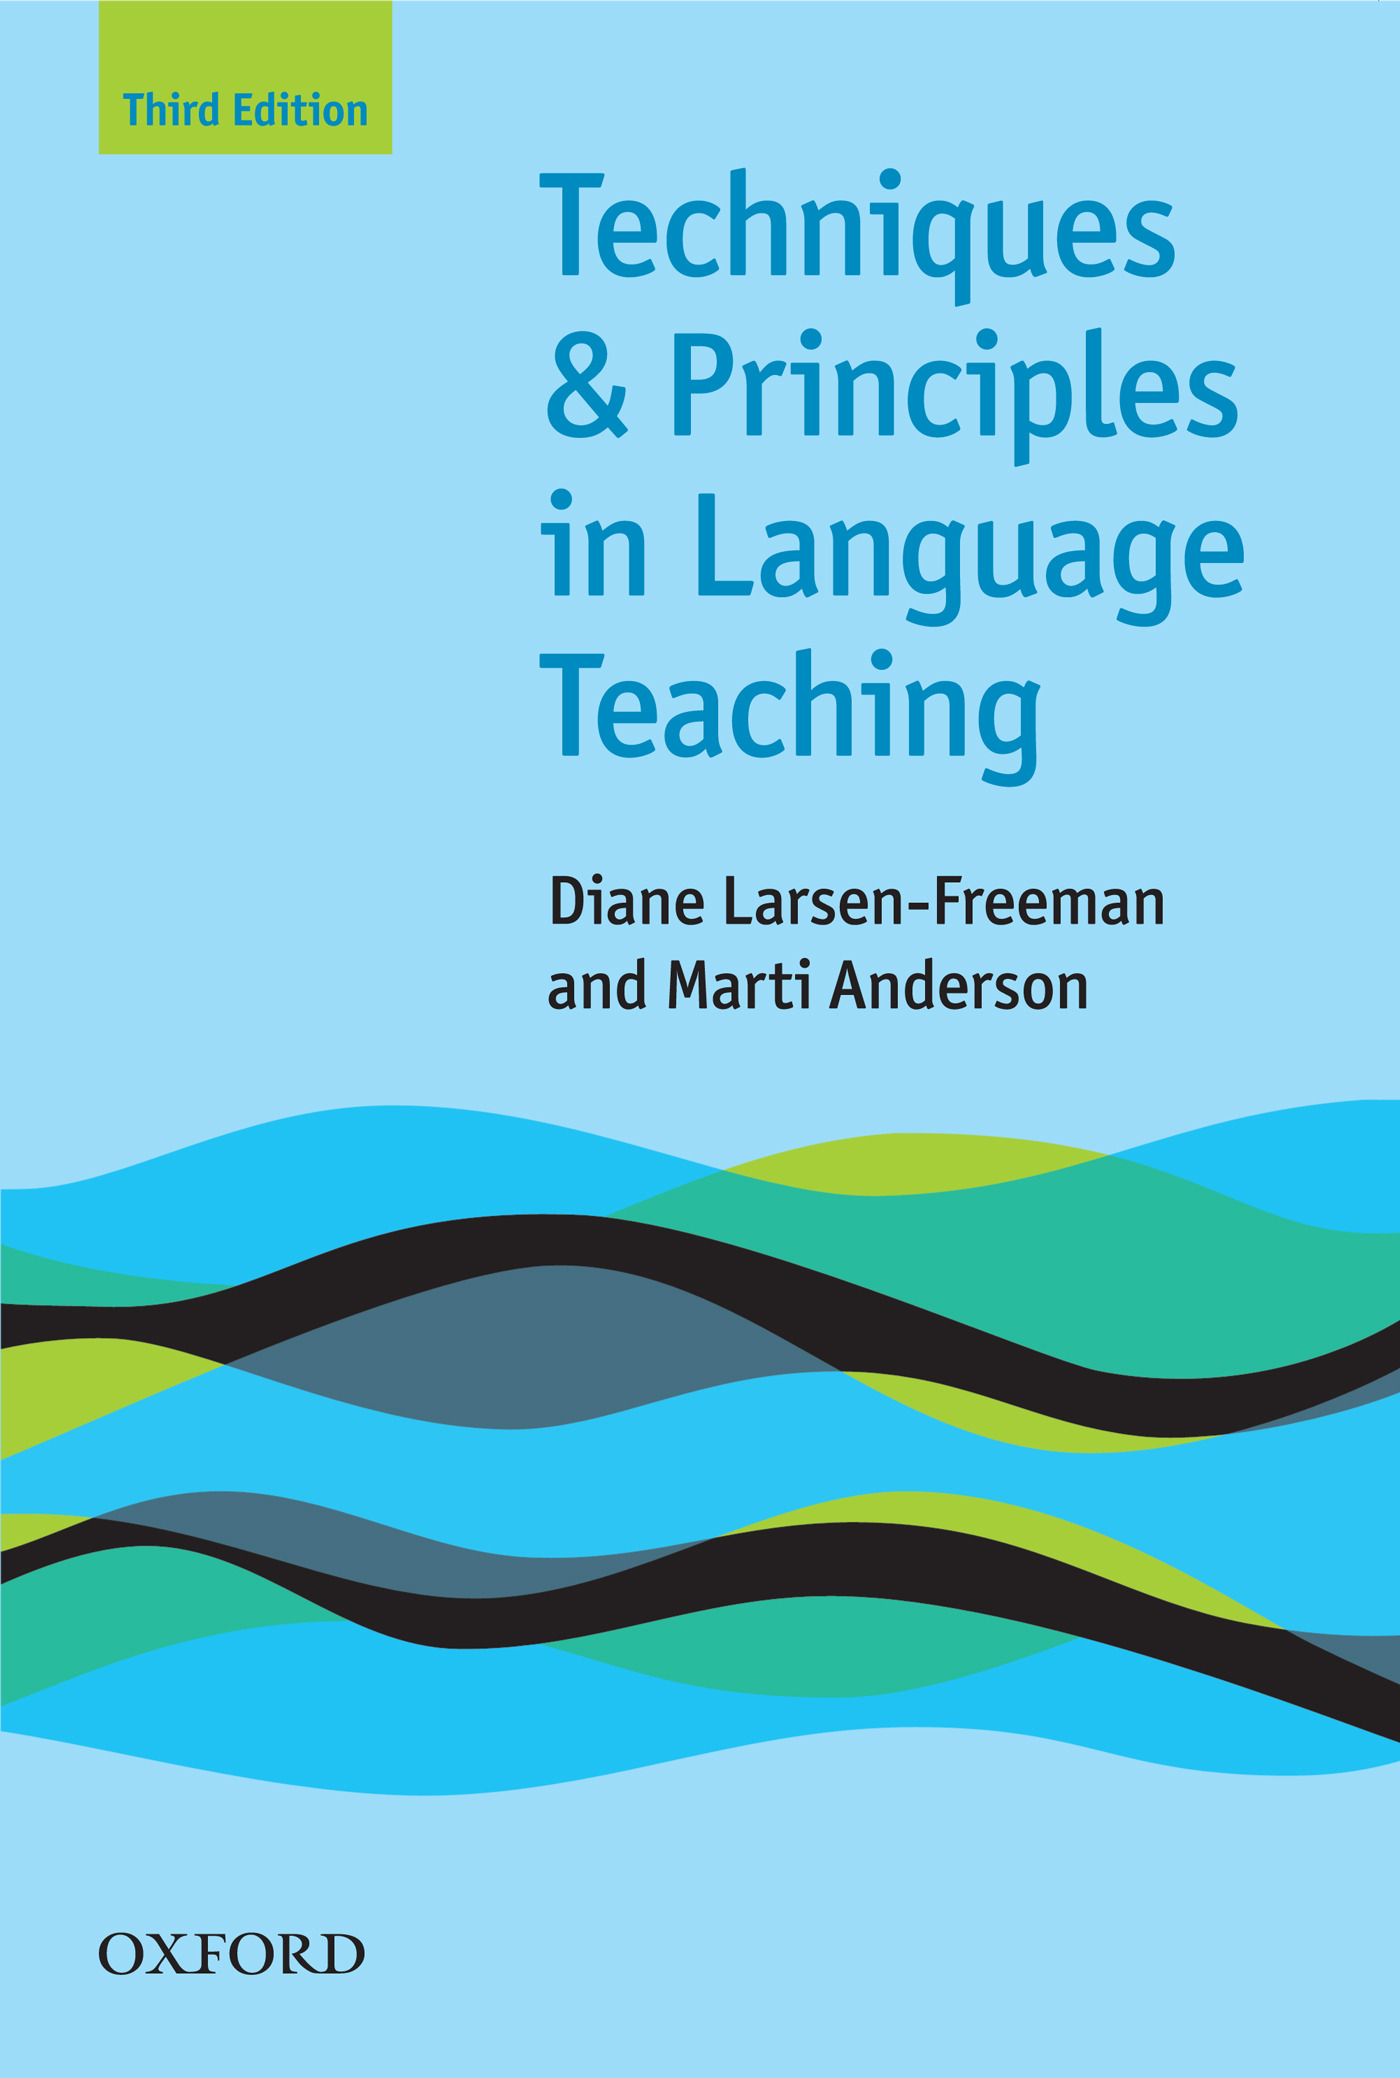 Marti Anderson Techniques and Principles in Language Teaching 3rd edition